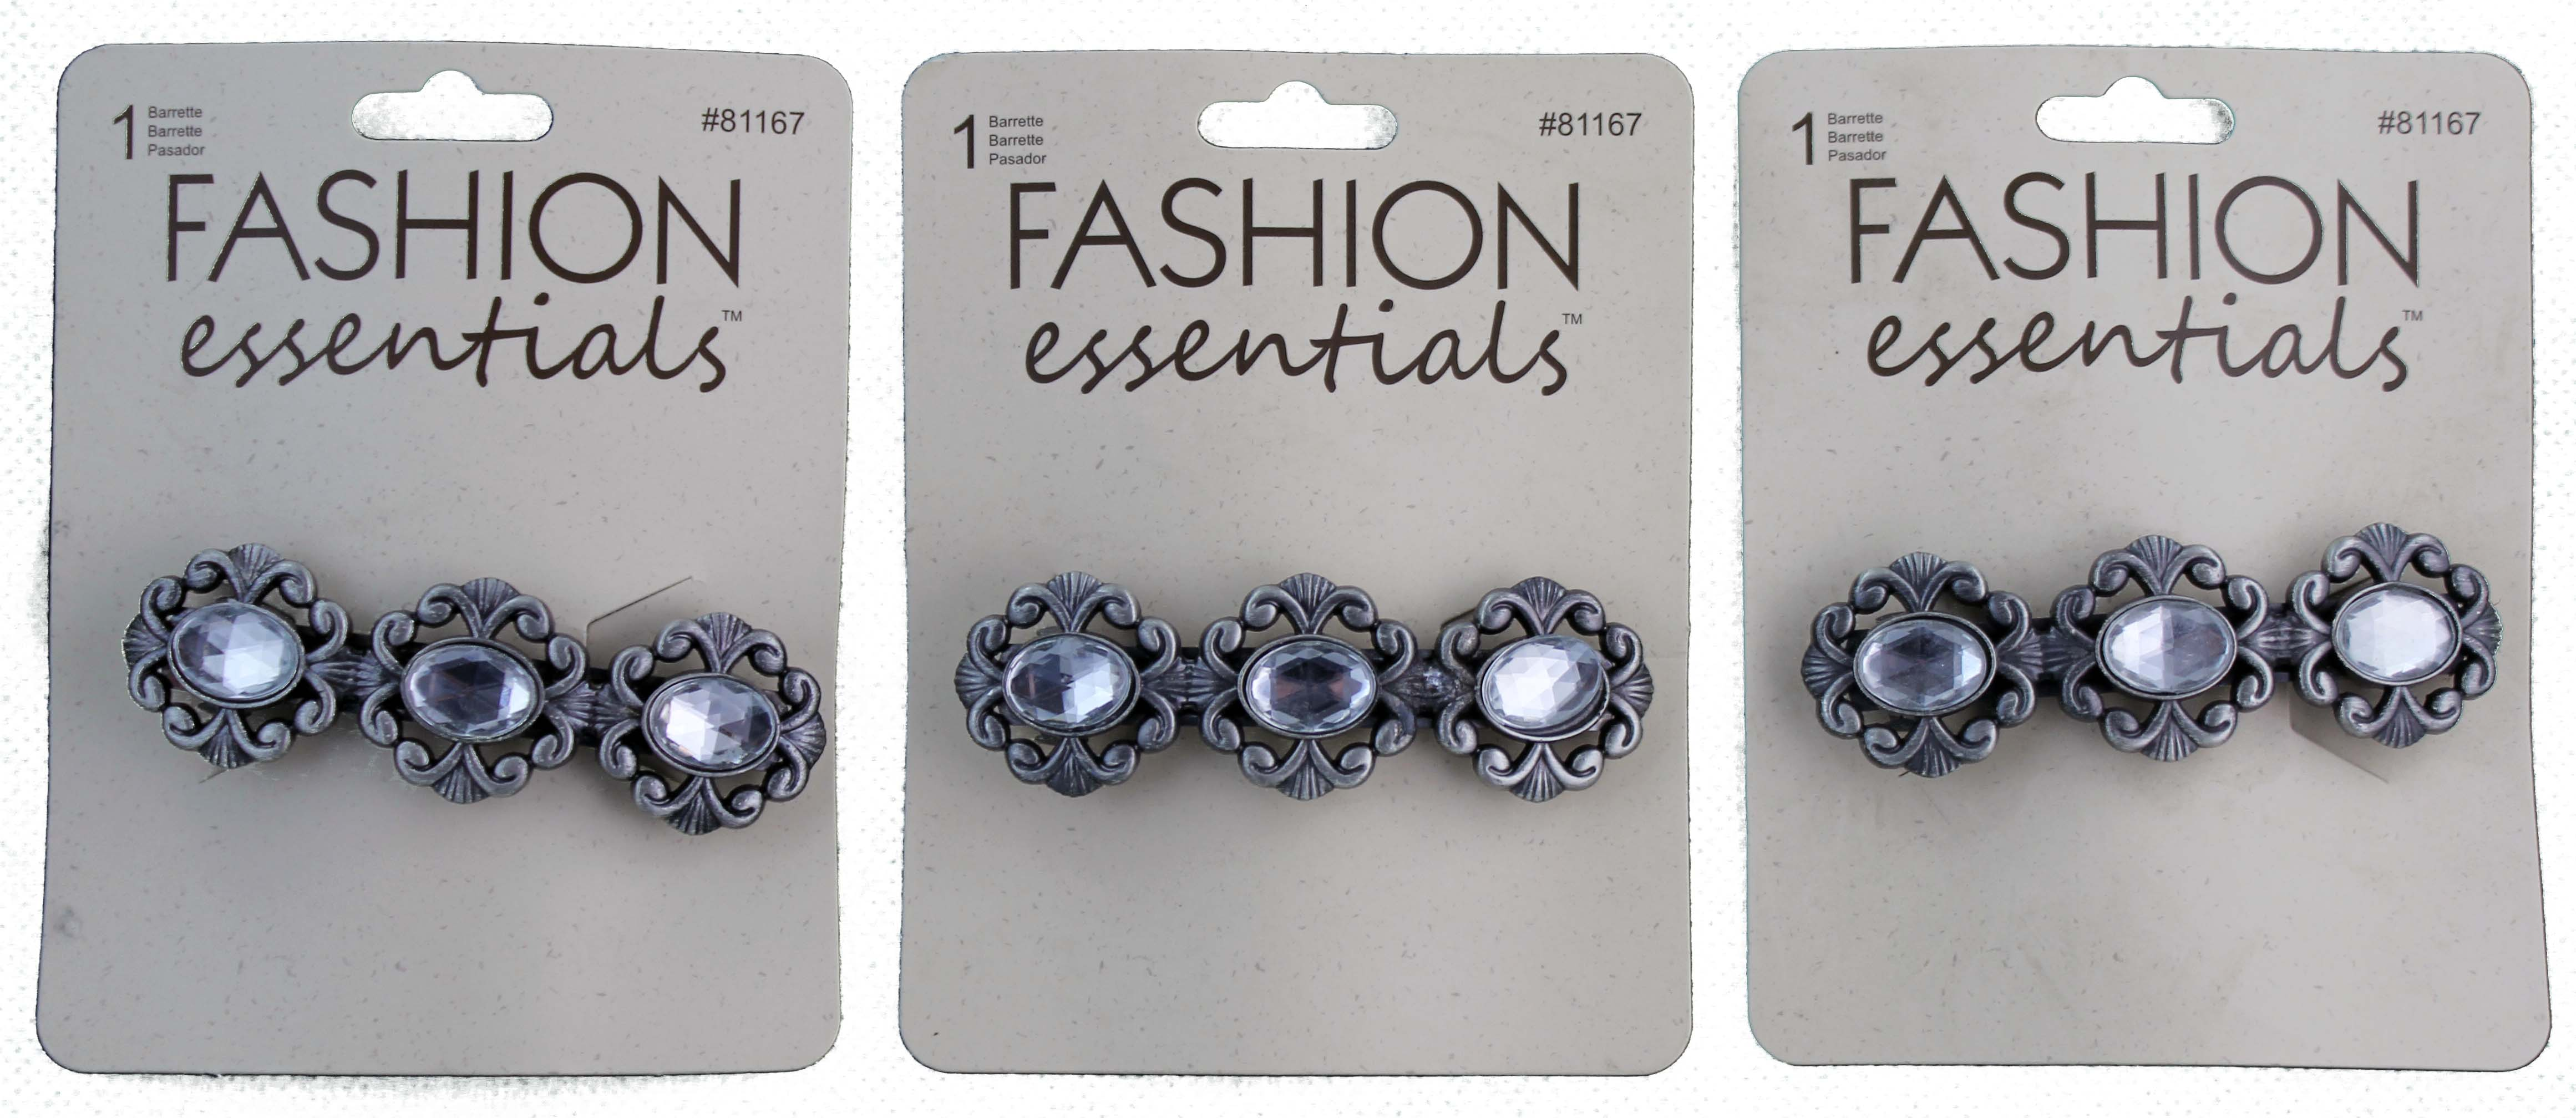 Fashion Essentials - 1 Barrette